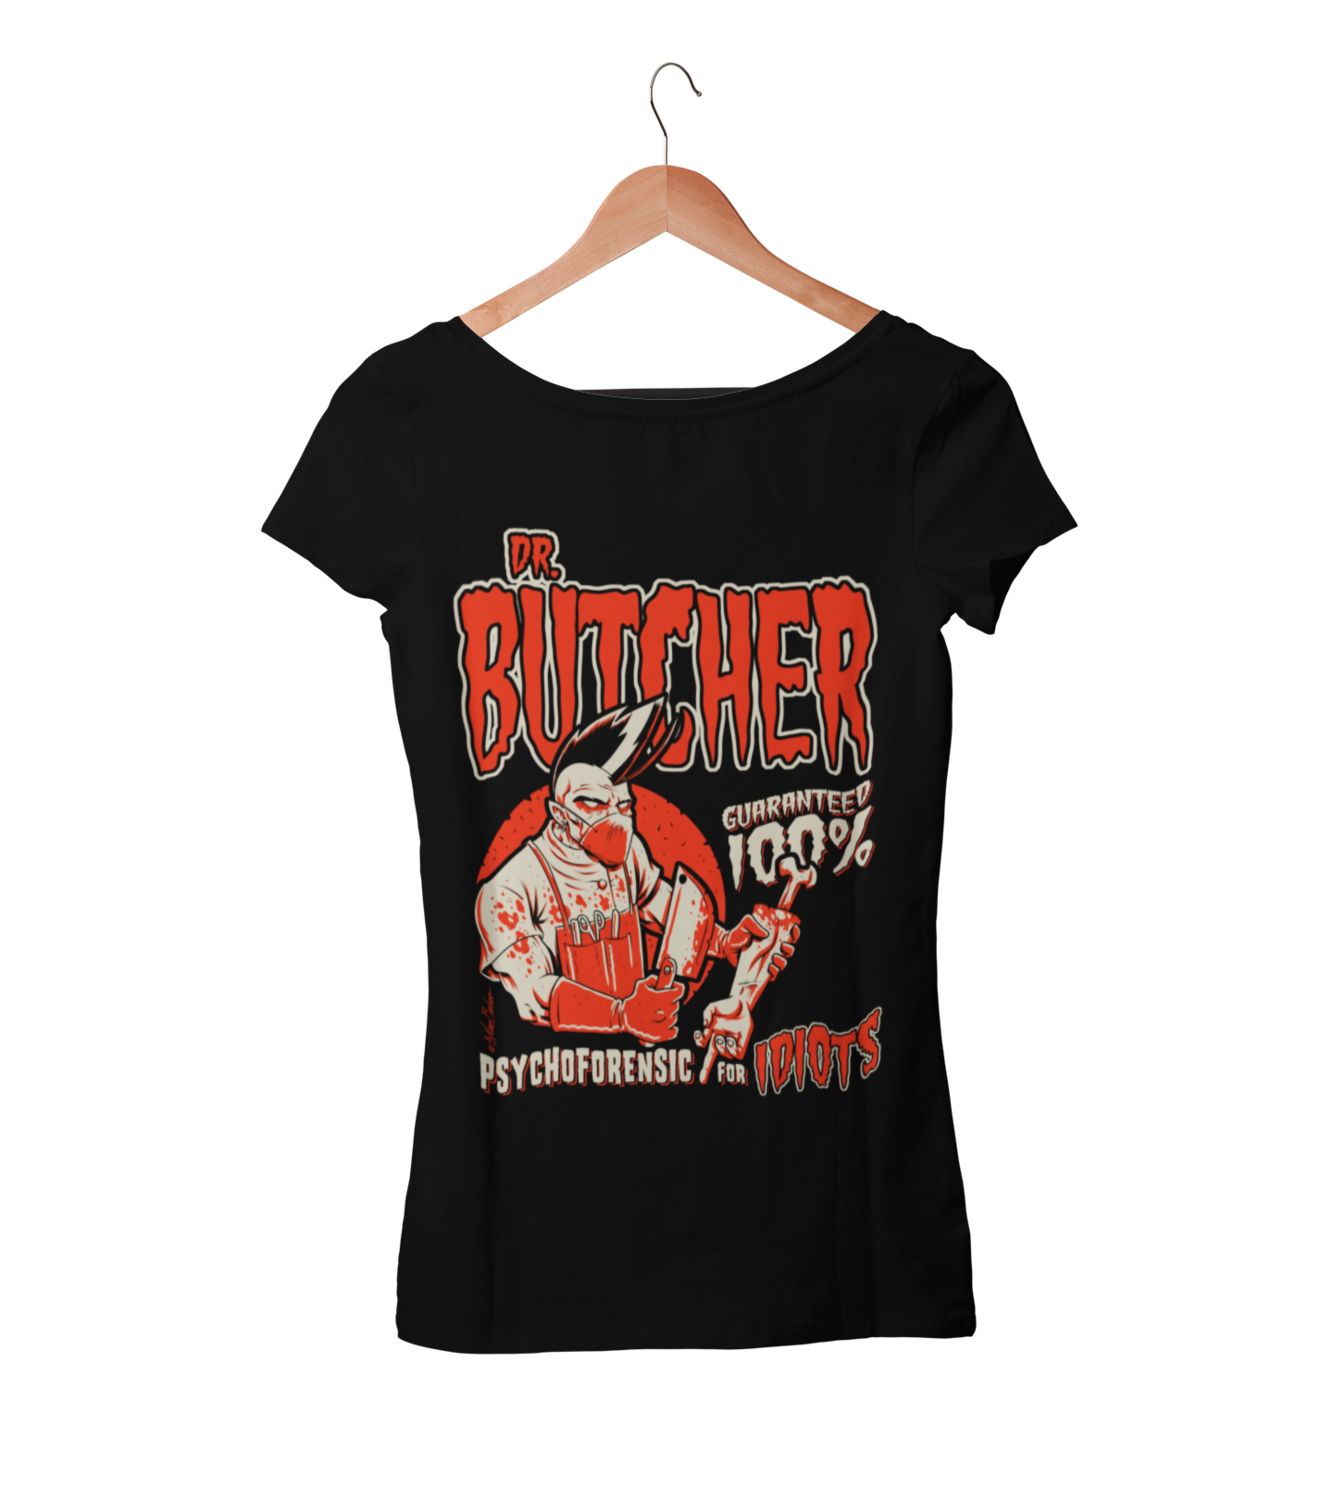 DR. BUTCHER T-SHIRT WOMAN by NANO BARBERO